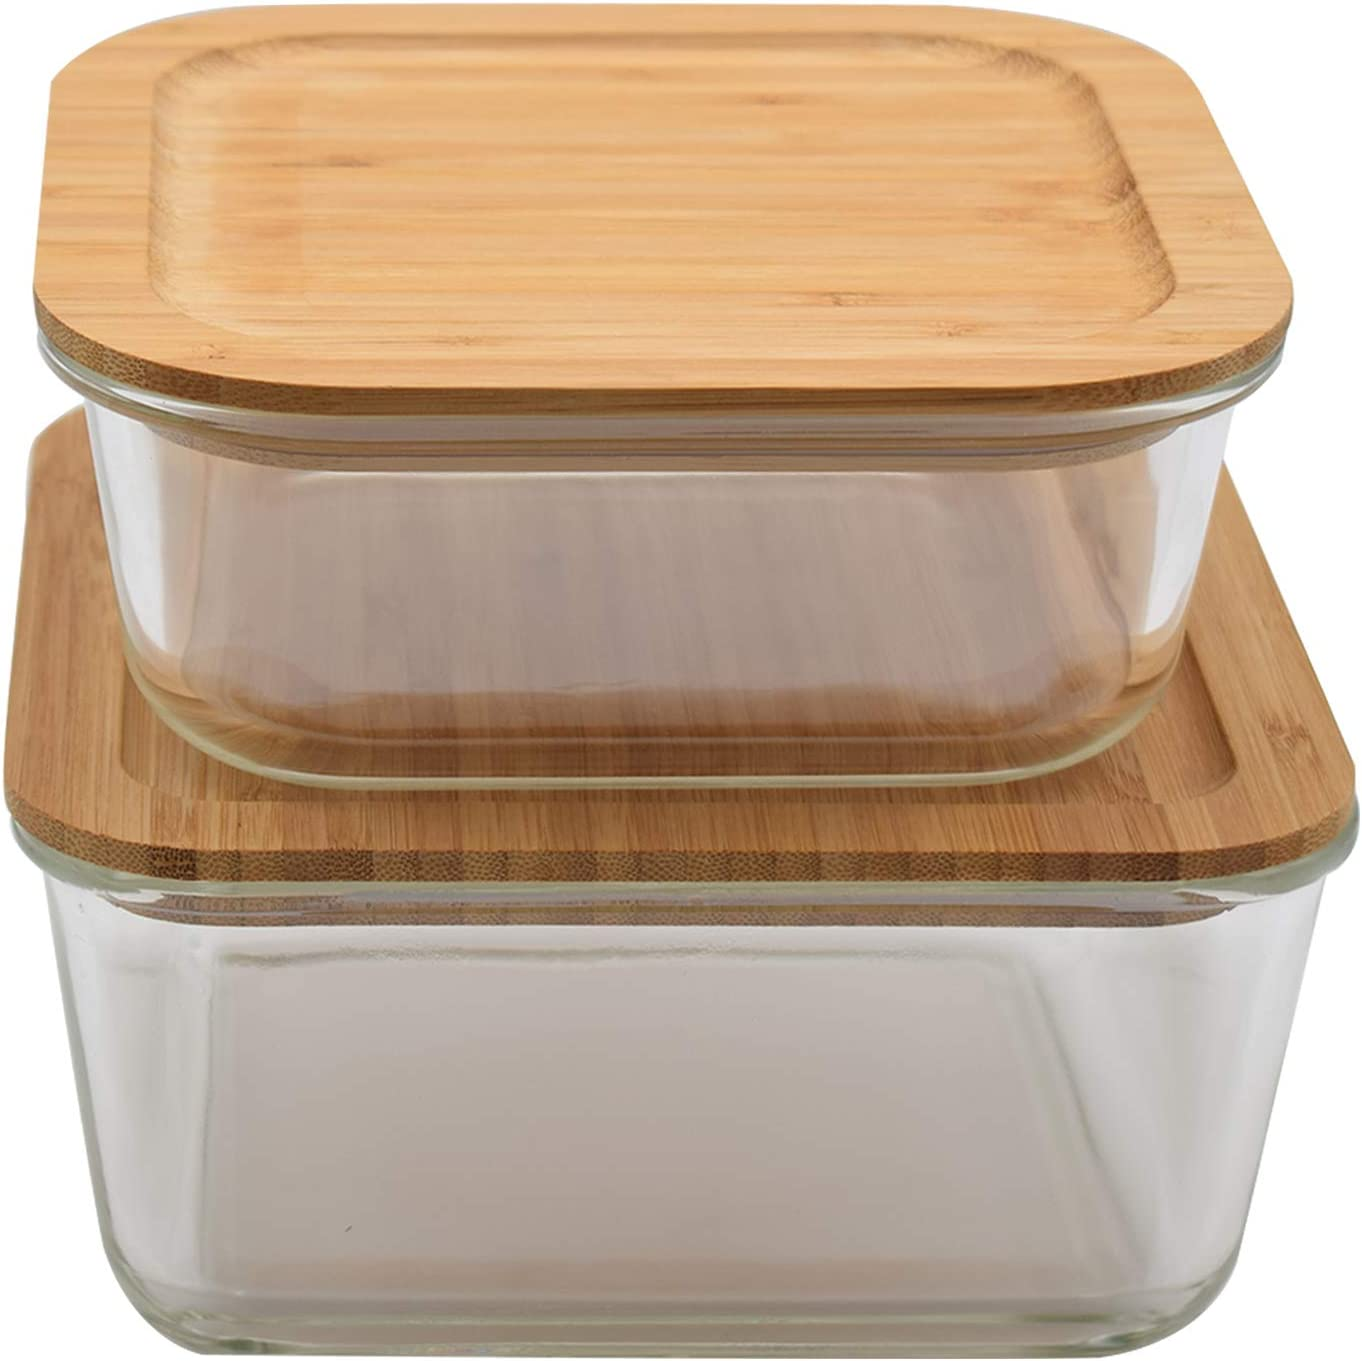 Large & XXL Glass Food Storage Containers with Bamboo Lids   Multi Use Kitchen Organization: Mixing Bowls, Meal Prep Containers, Baking, Lunch Box, Bento Box   BPA-Free Eco-Friendly Container Set of 2